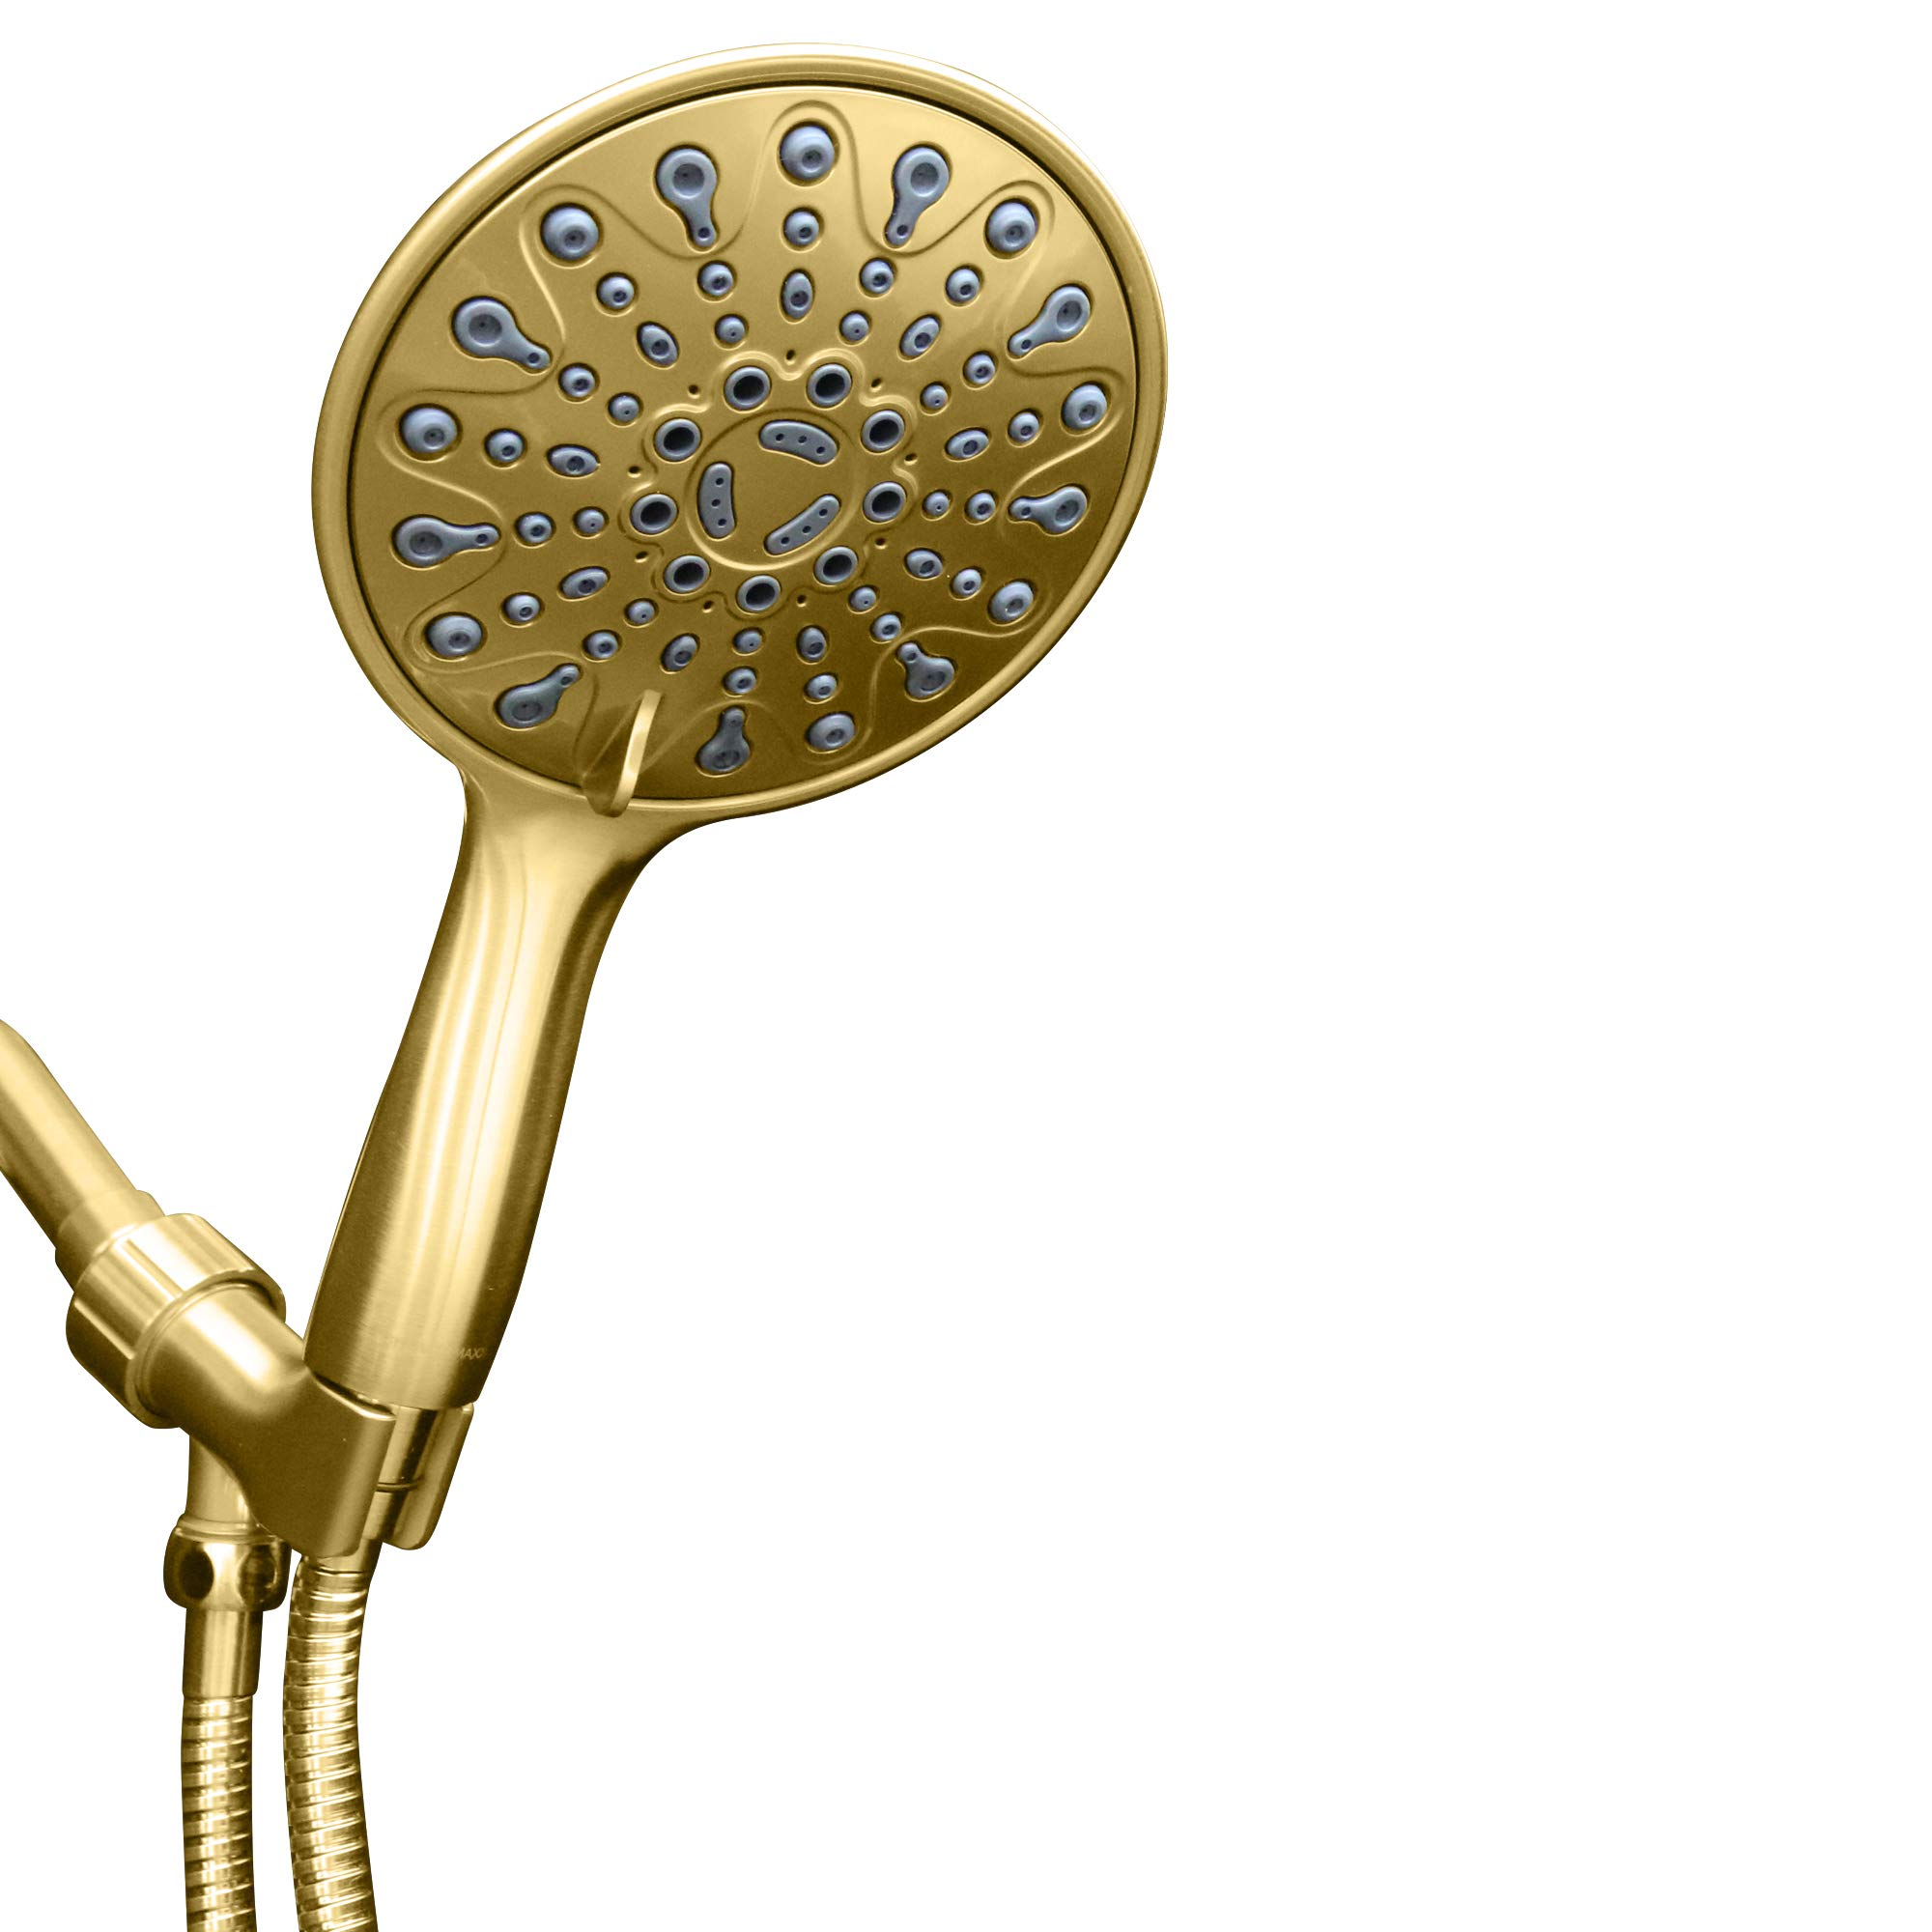 ShowerMaxx | Elite Series | 6 Spray Settings 6 inch Hand Held Rainfall Shower Head | Extra Long Stainless Steel Hose | Easy-to-Remove Flow Restrictor to MAXX-imize Rain | Polished Brass/Gold Finish